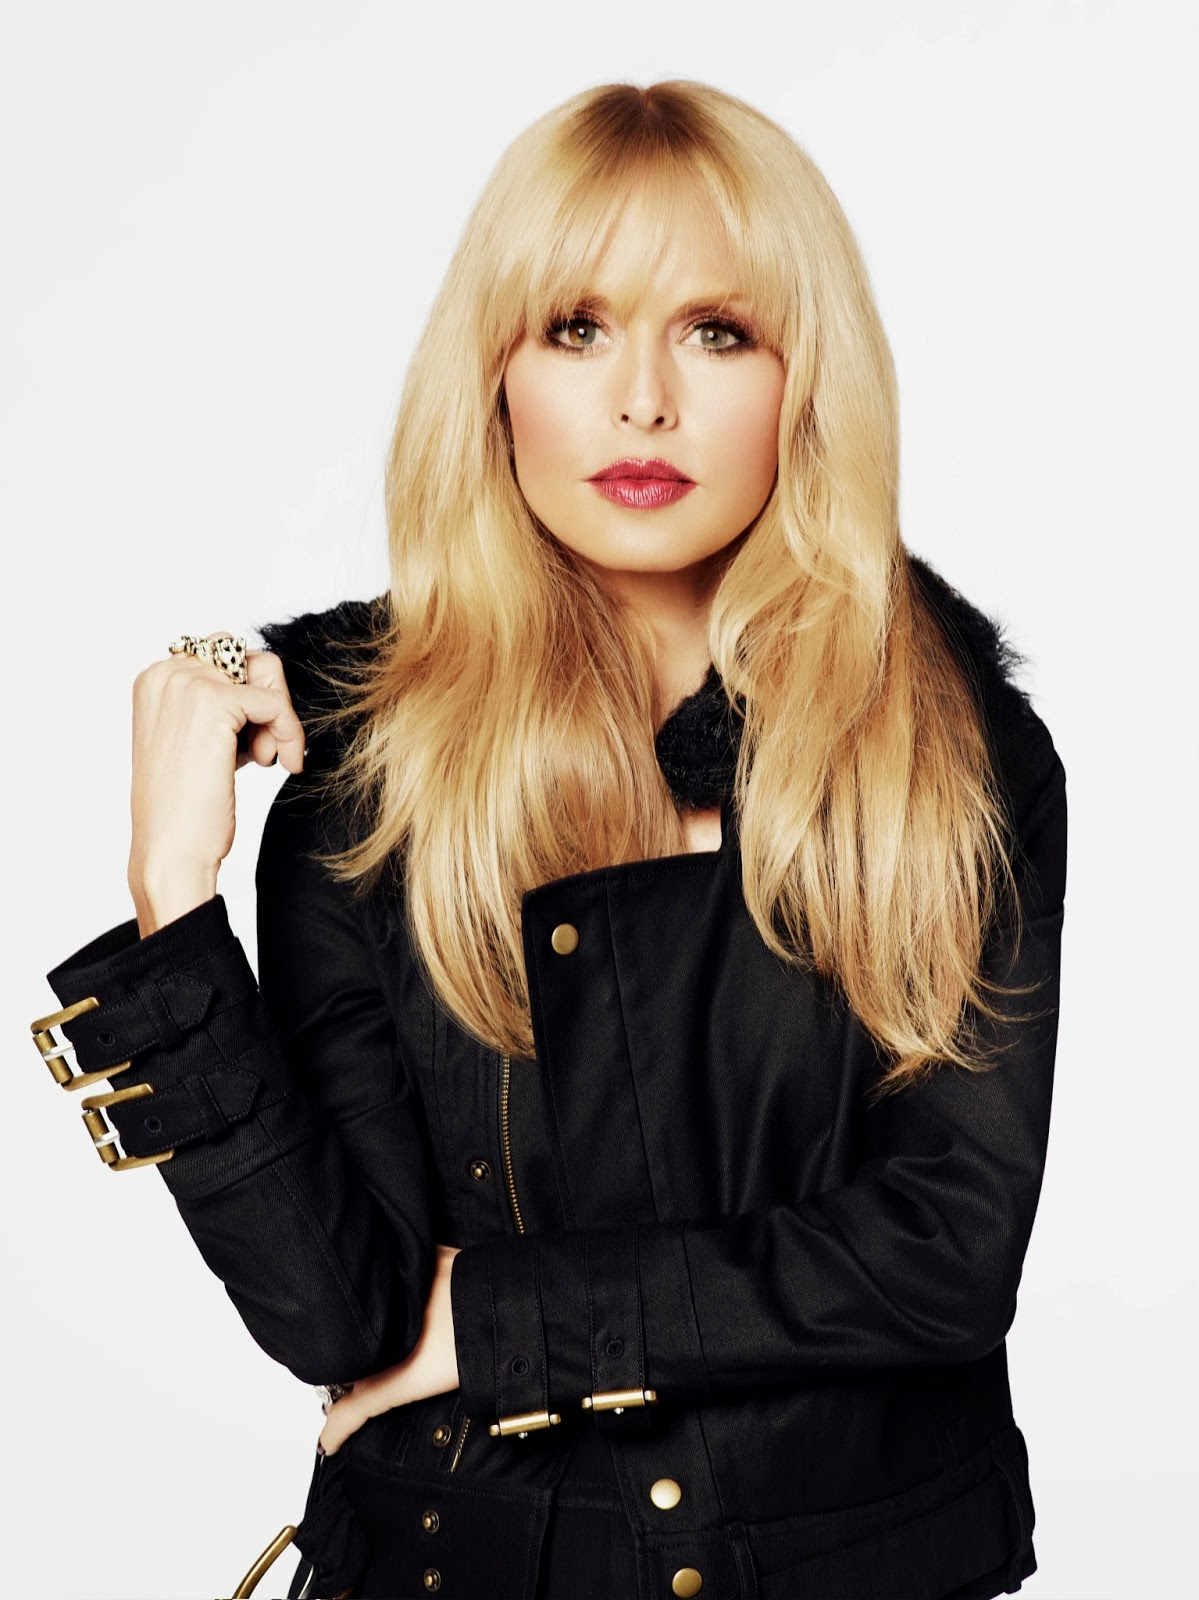 Designer and stylist Rachel Zoe chats about new favorite shoes and new book.